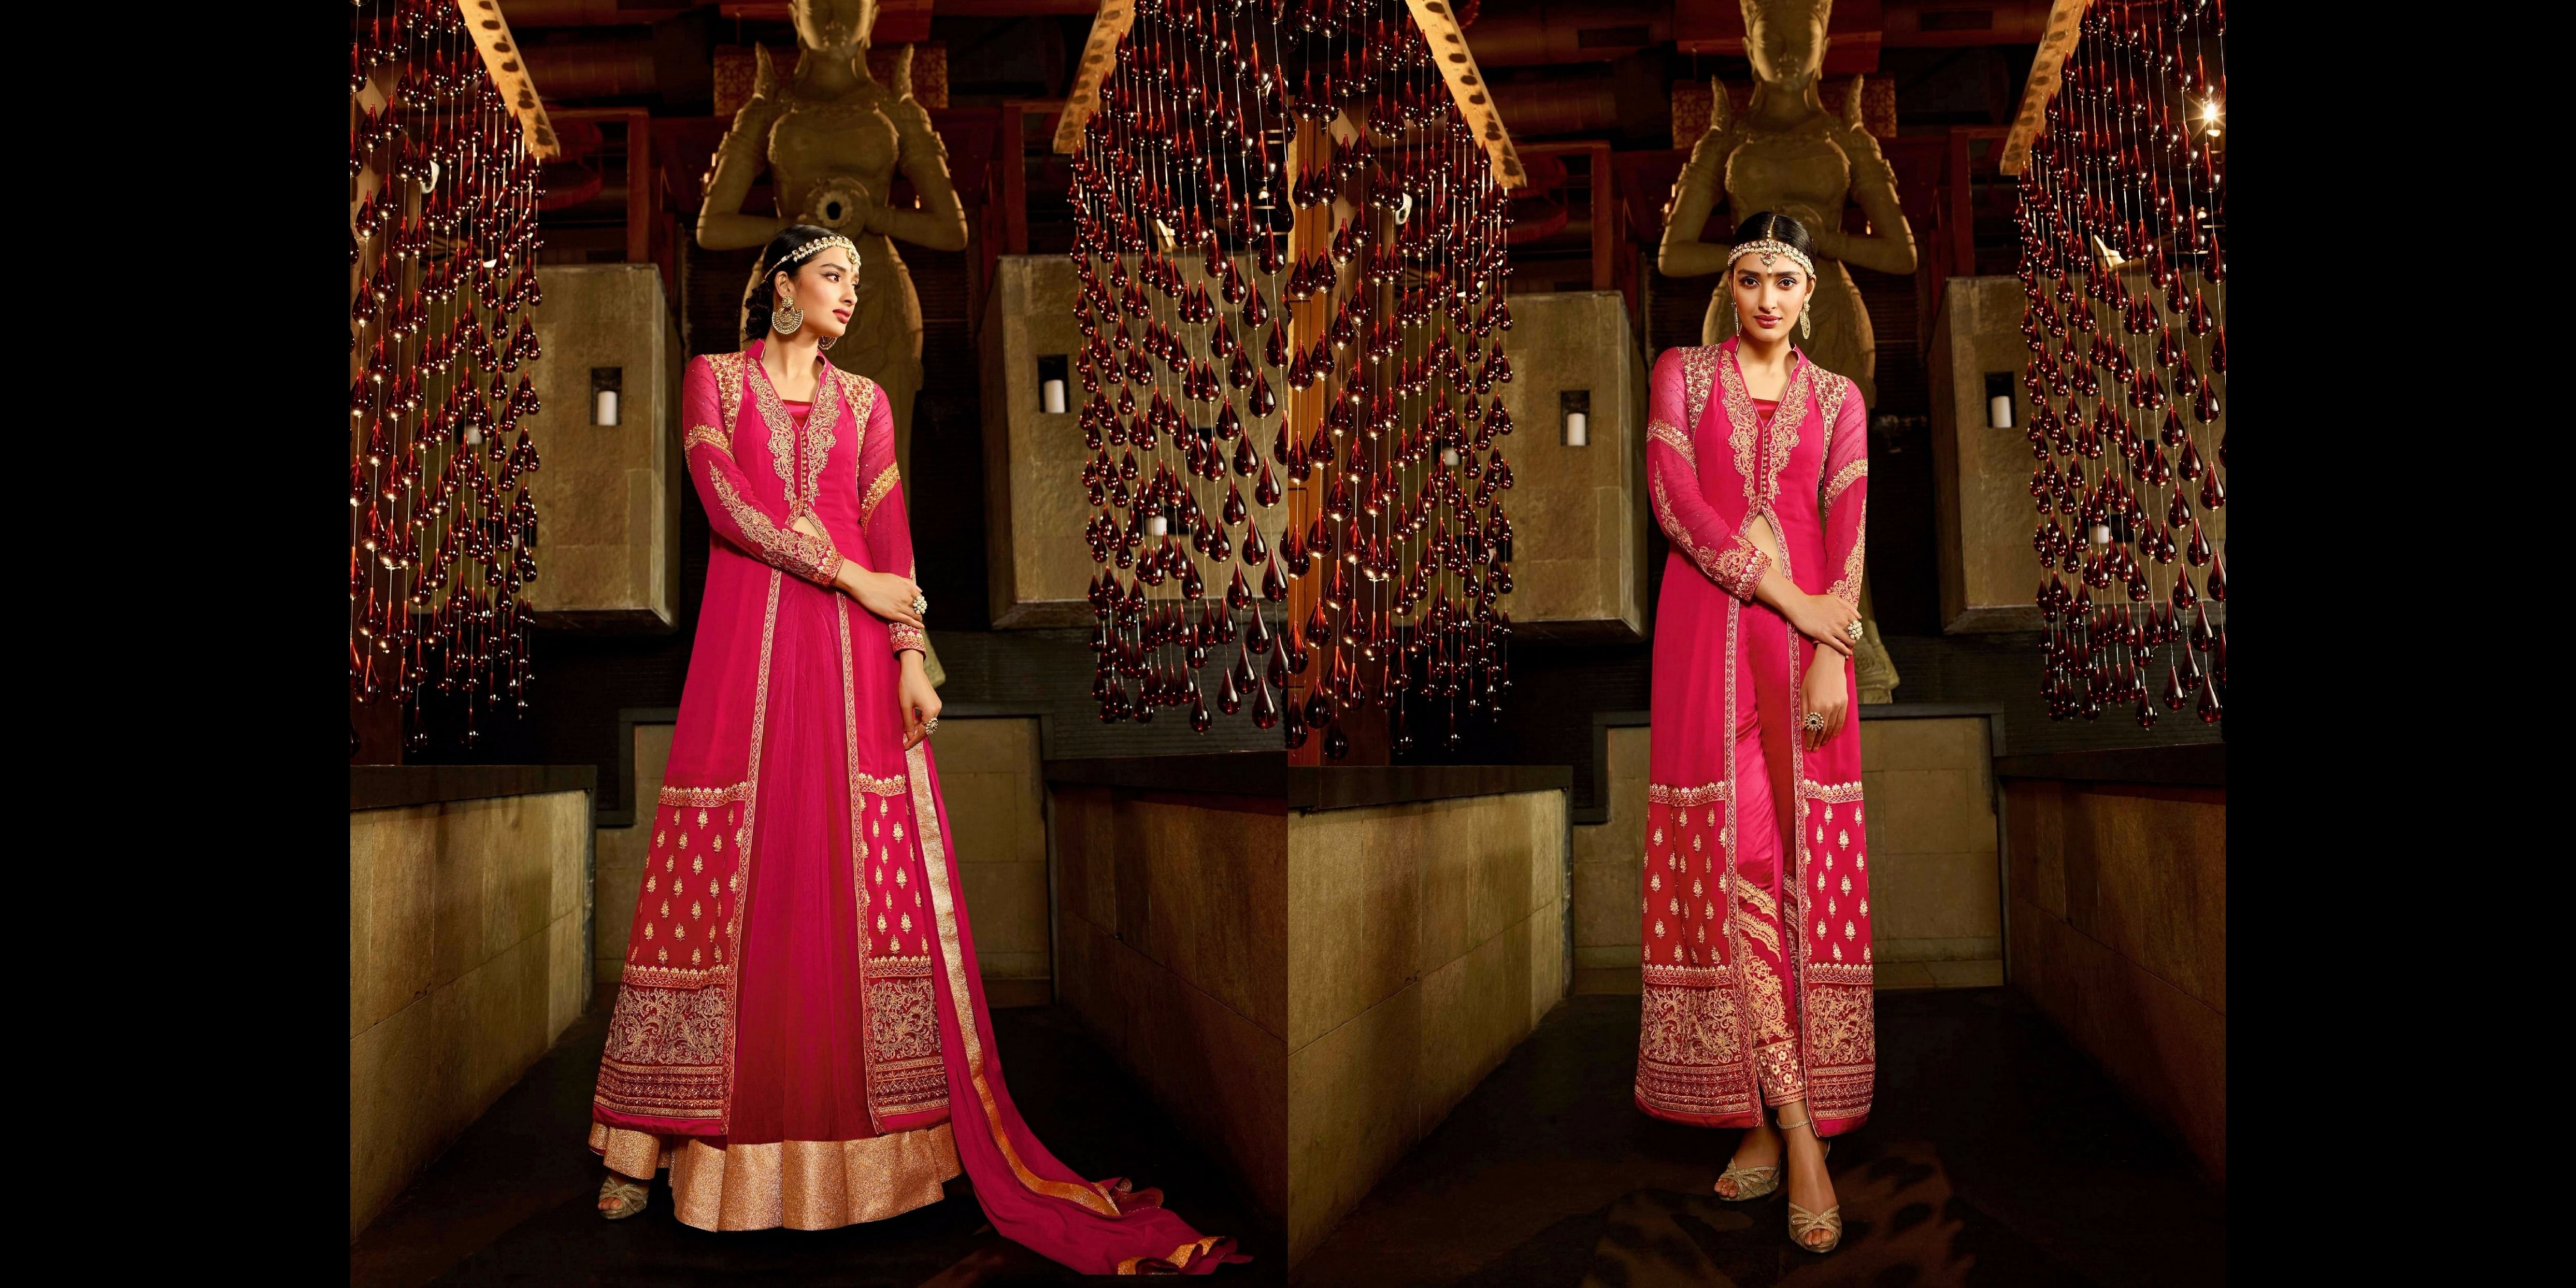 a3b331d28 There is plethora of online shopping stores available that caters to the  demand of ethnic wear amongst the women. These ethnic fashion stores are  leaving no ...